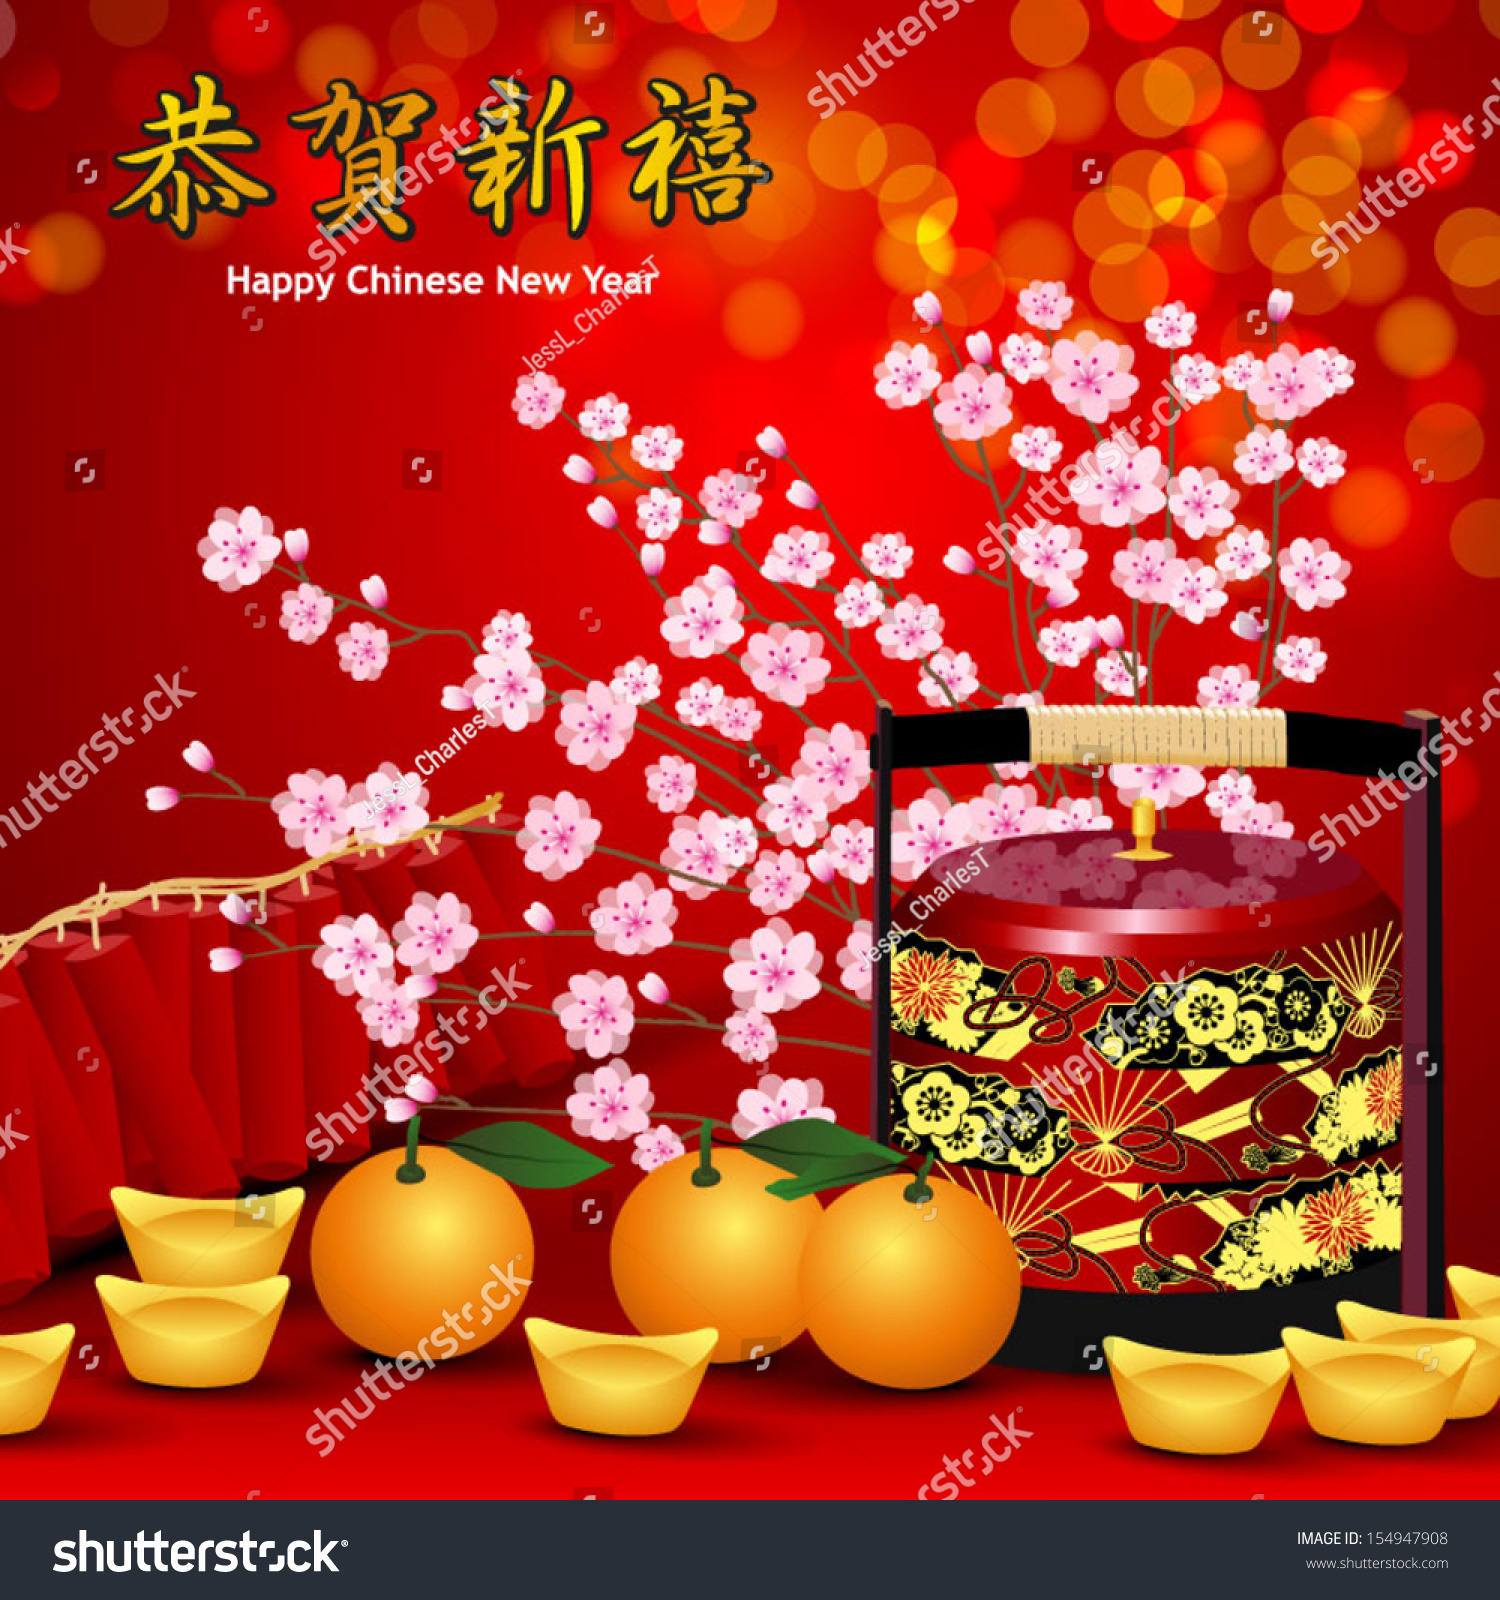 chinese lunar new year with chinese basket - Chinese Lunar New Year